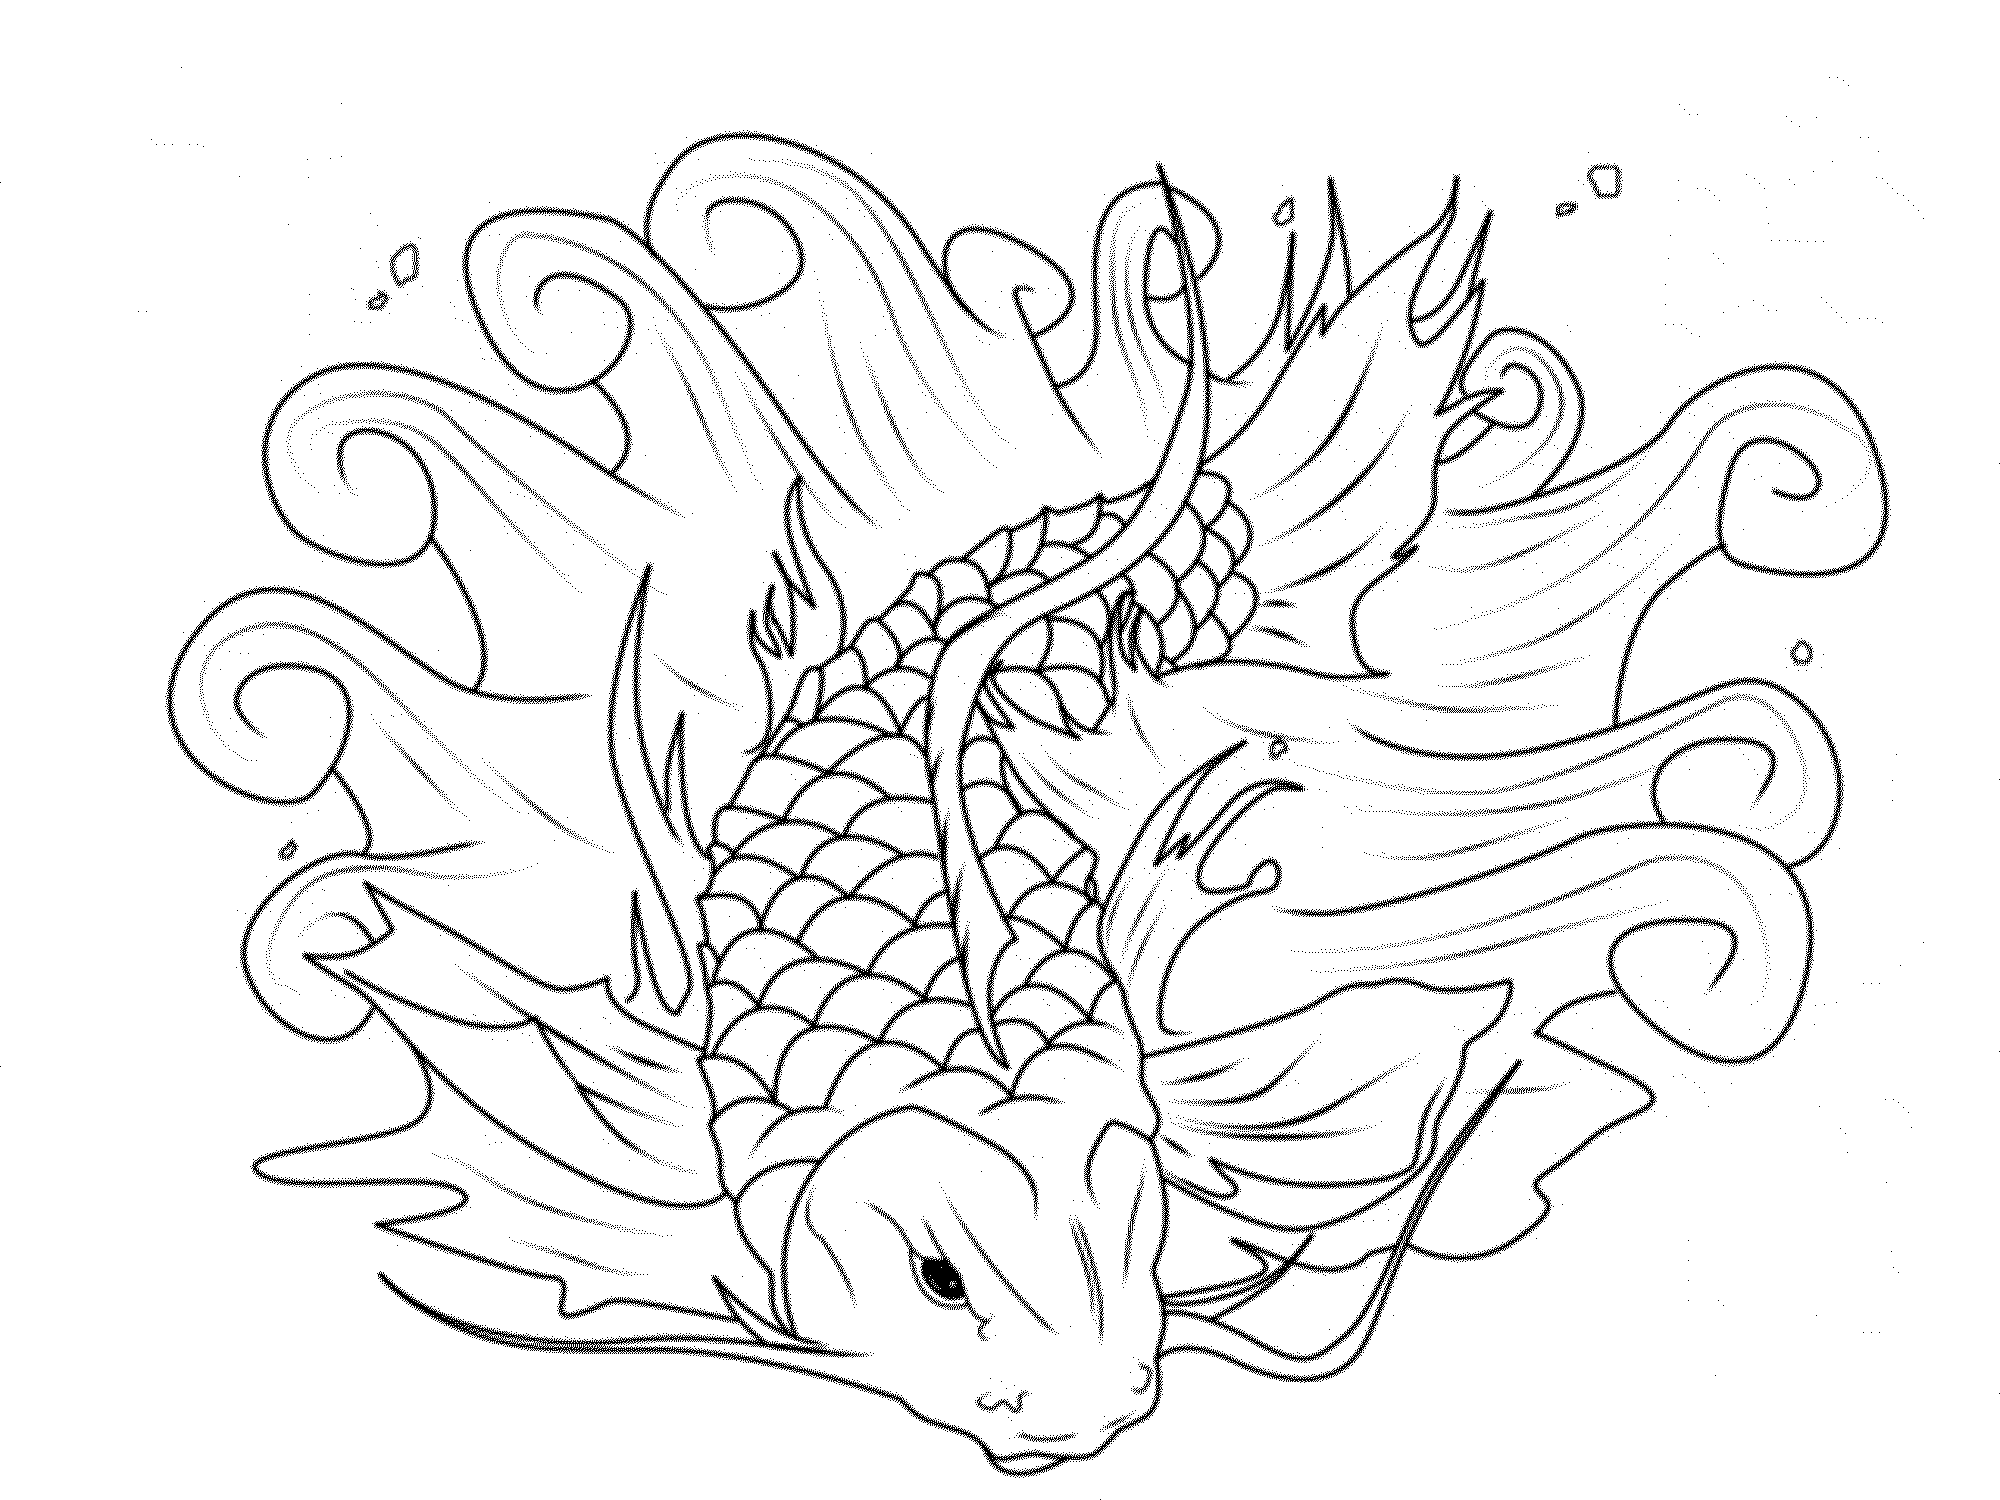 Japanese Koi Fish Coloring Pages - Download & Print Online ... | 1500x2000